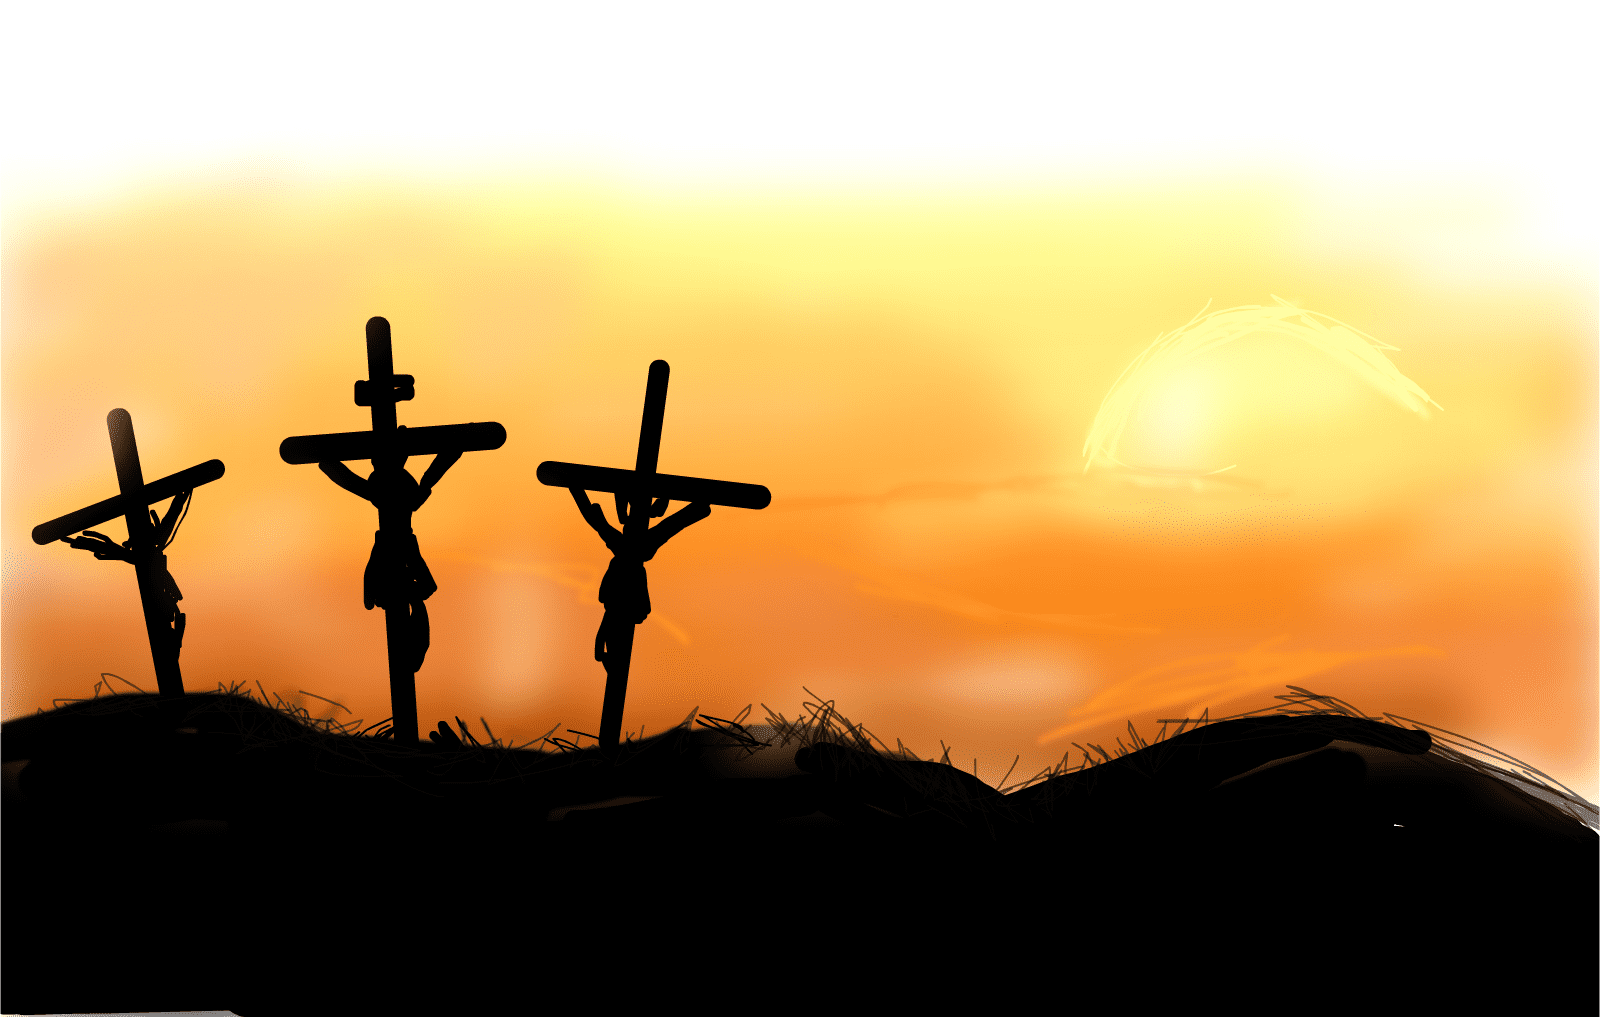 Find out the kind of cross Jesus carried to Calvary?